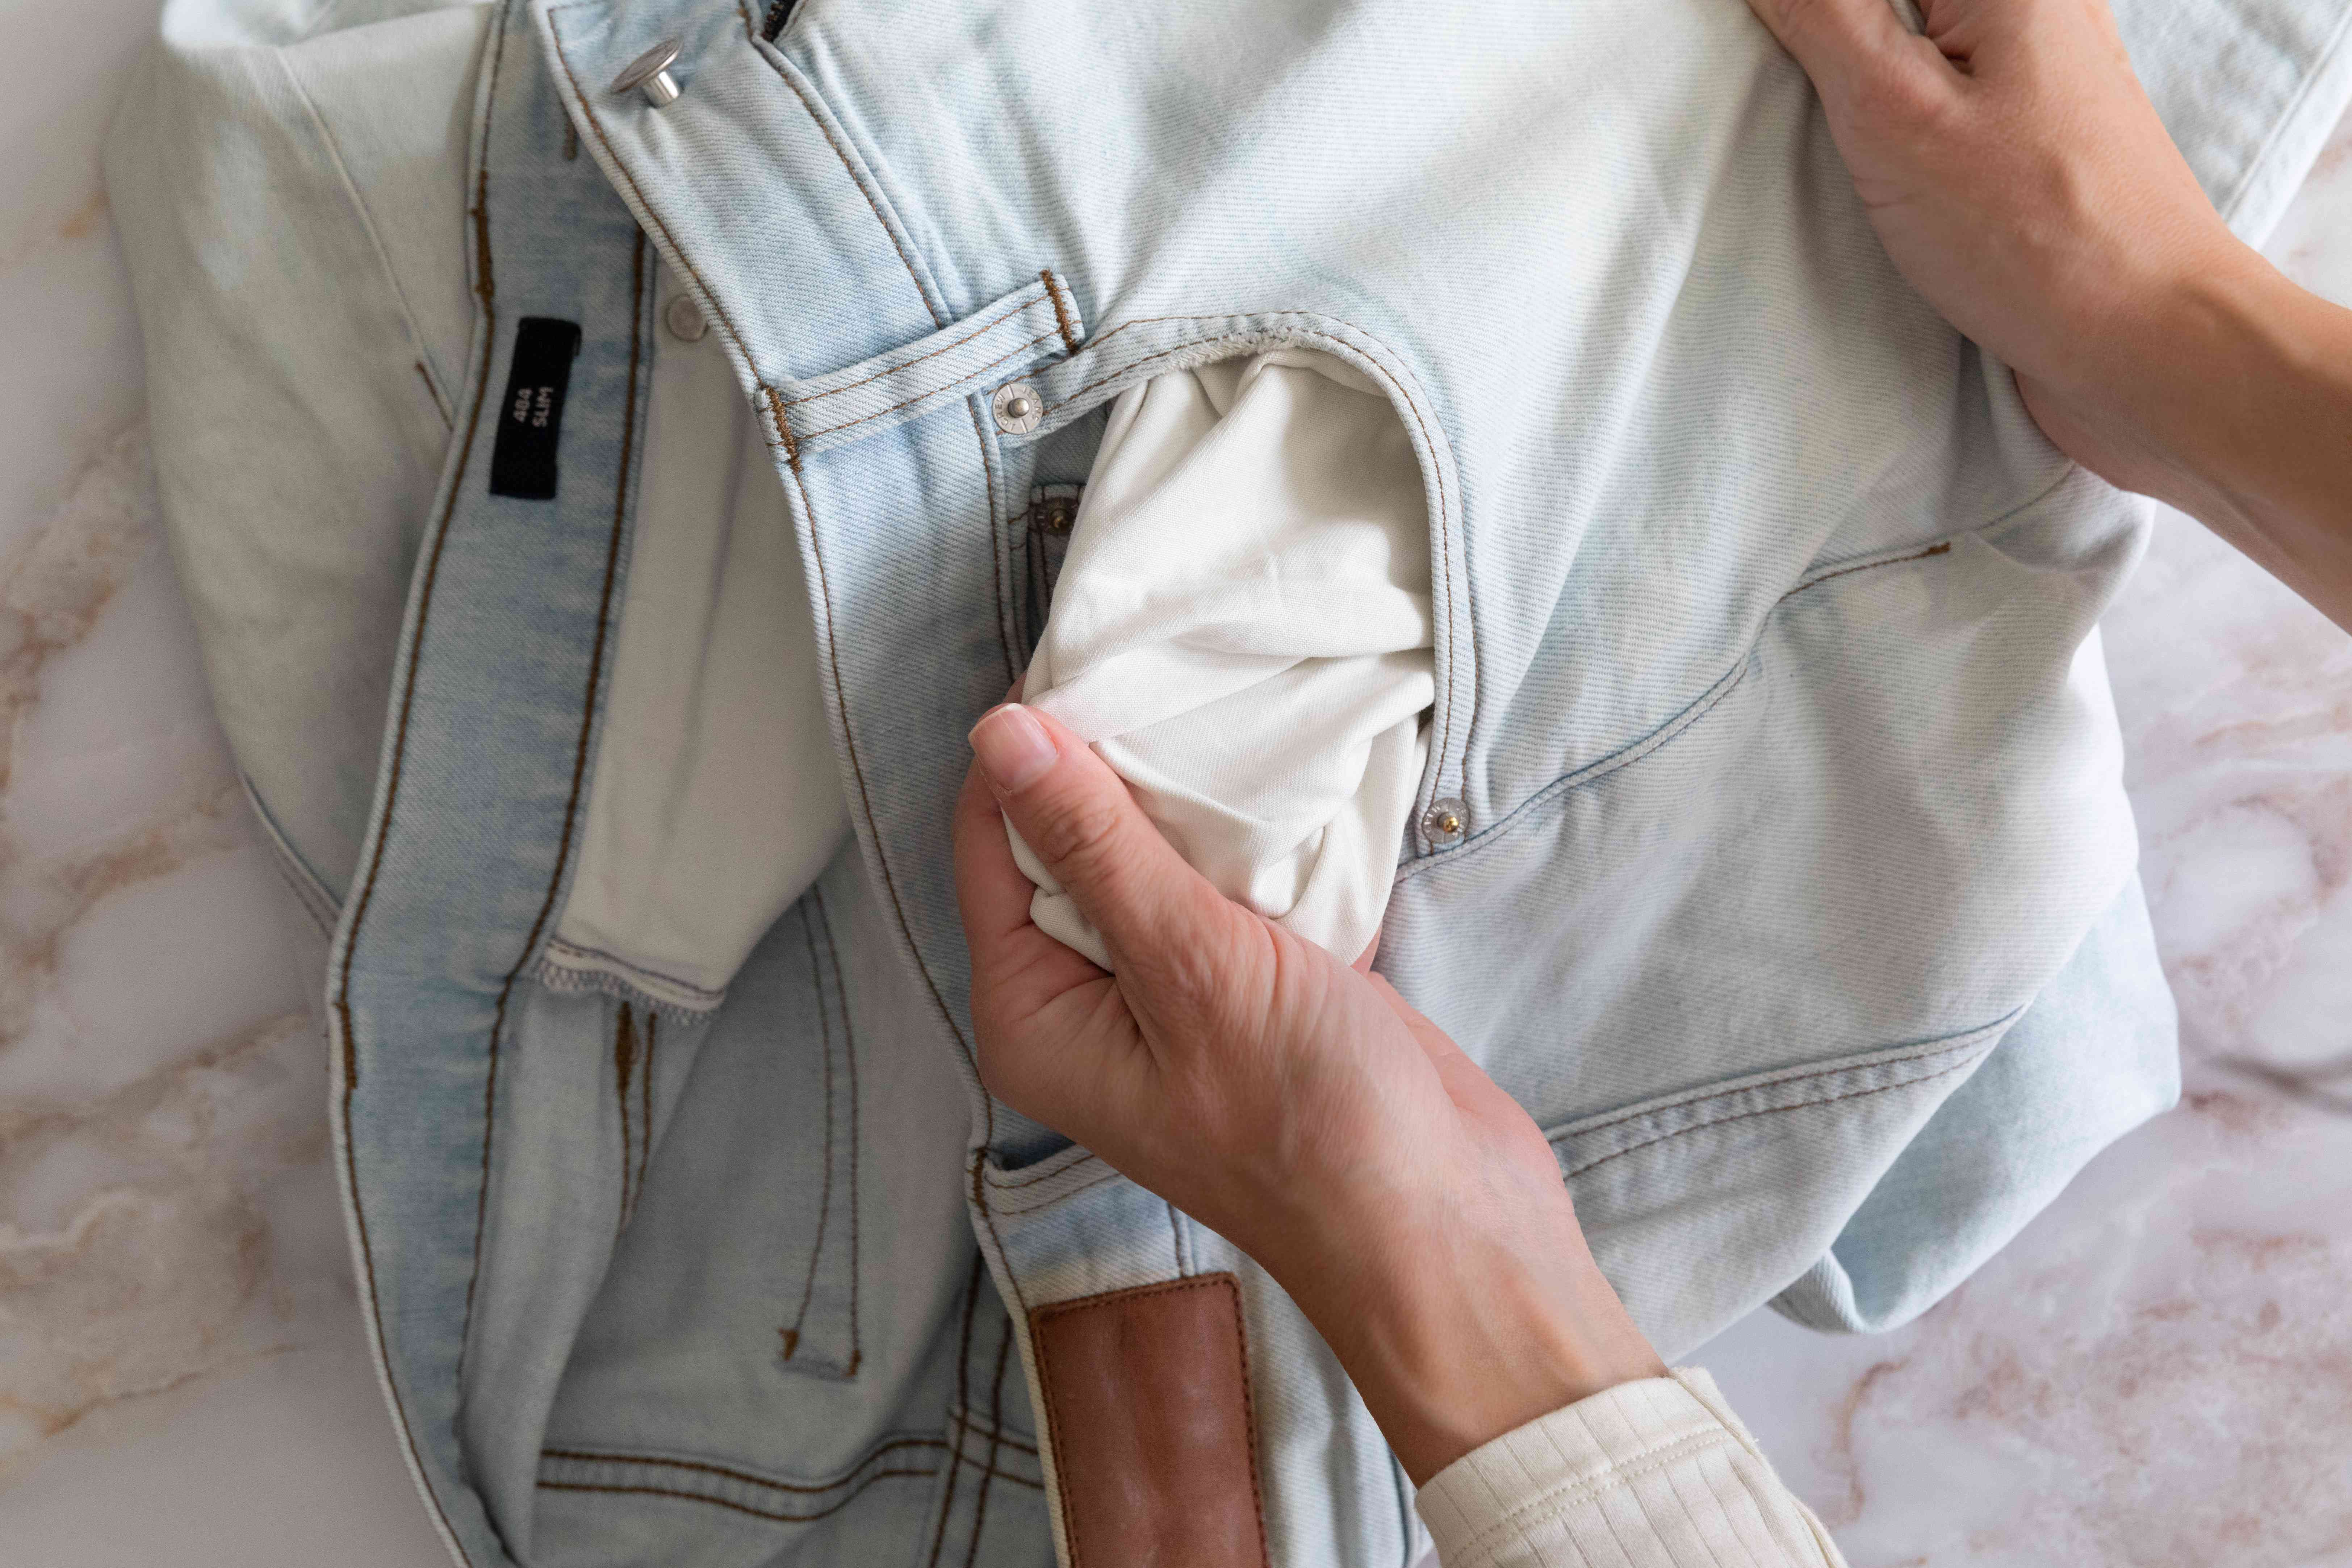 Denim pants pockets checked for loose items before washing